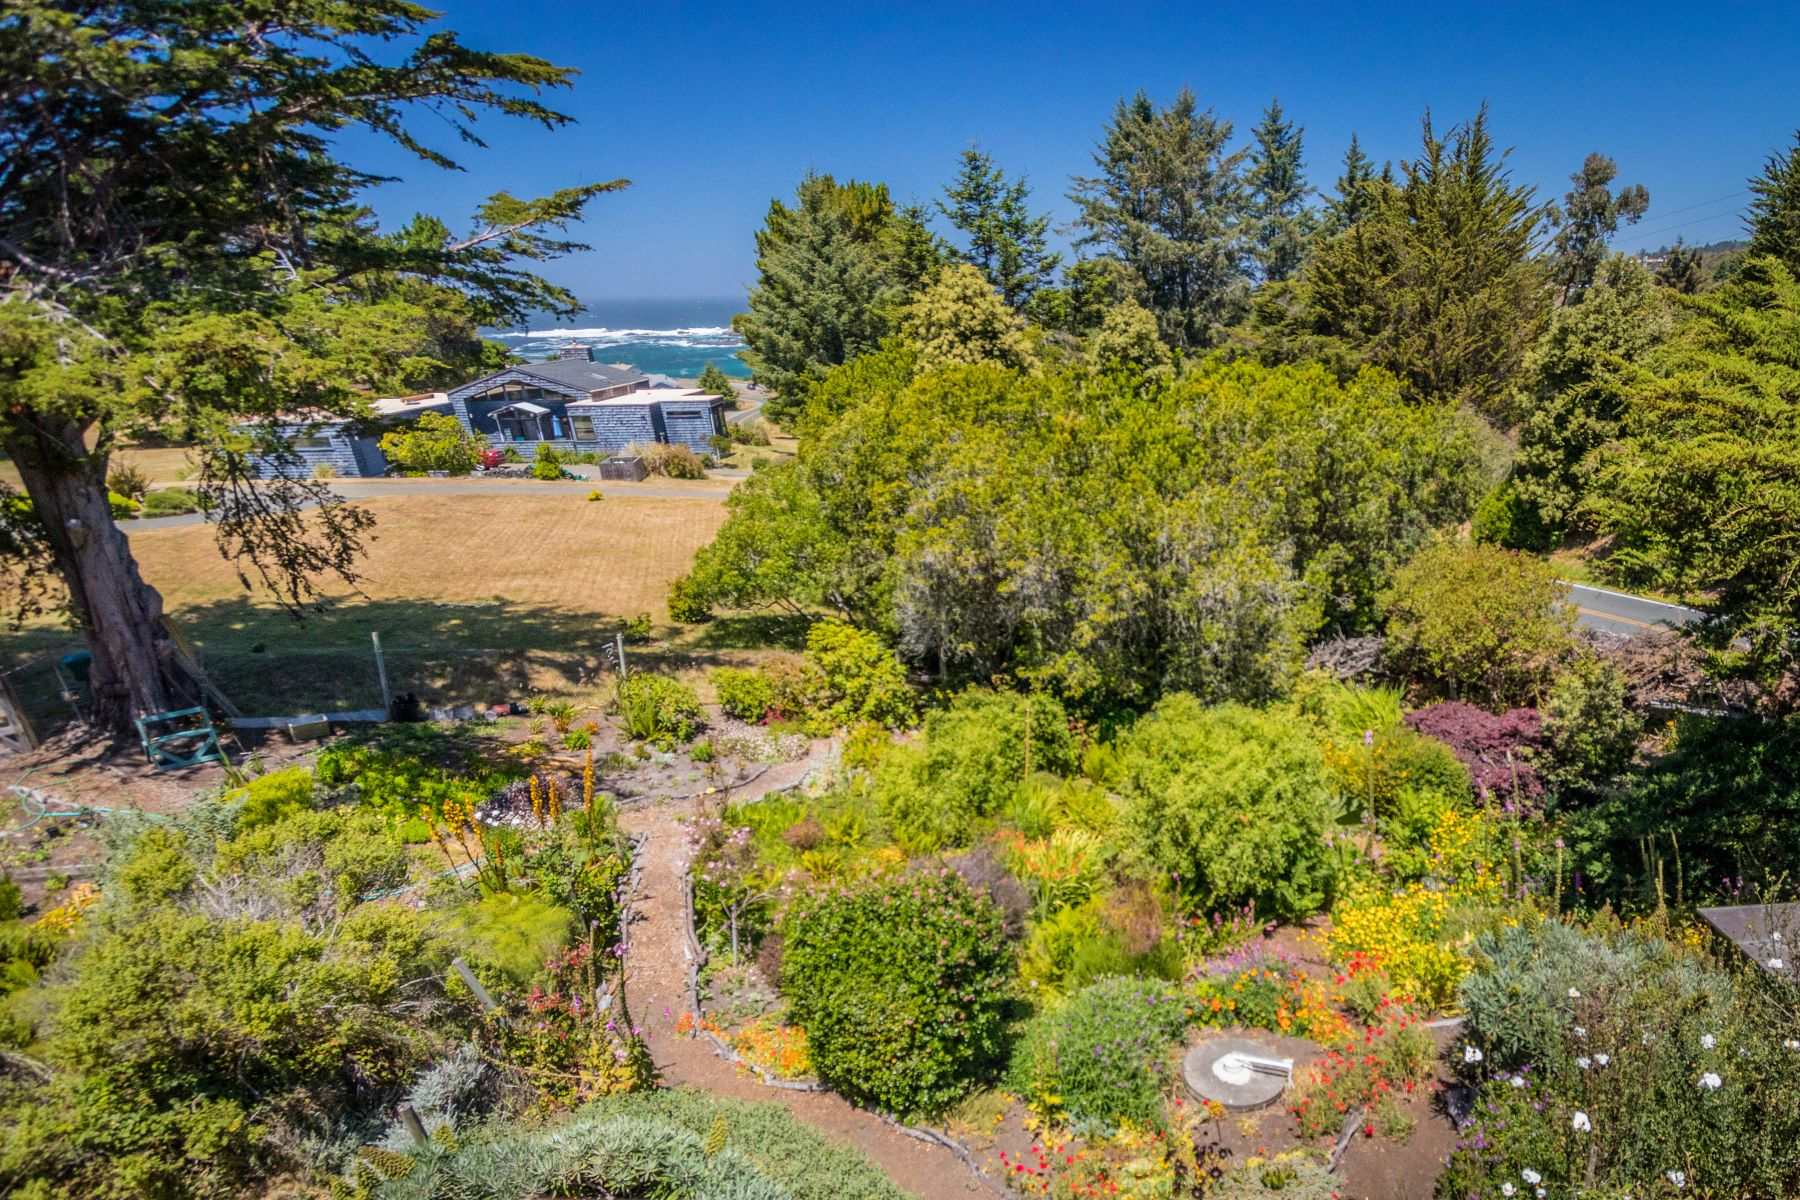 Additional photo for property listing at Upscale Mendocino Home! 45220 S. Caspar Drive Mendocino, California 95460 United States